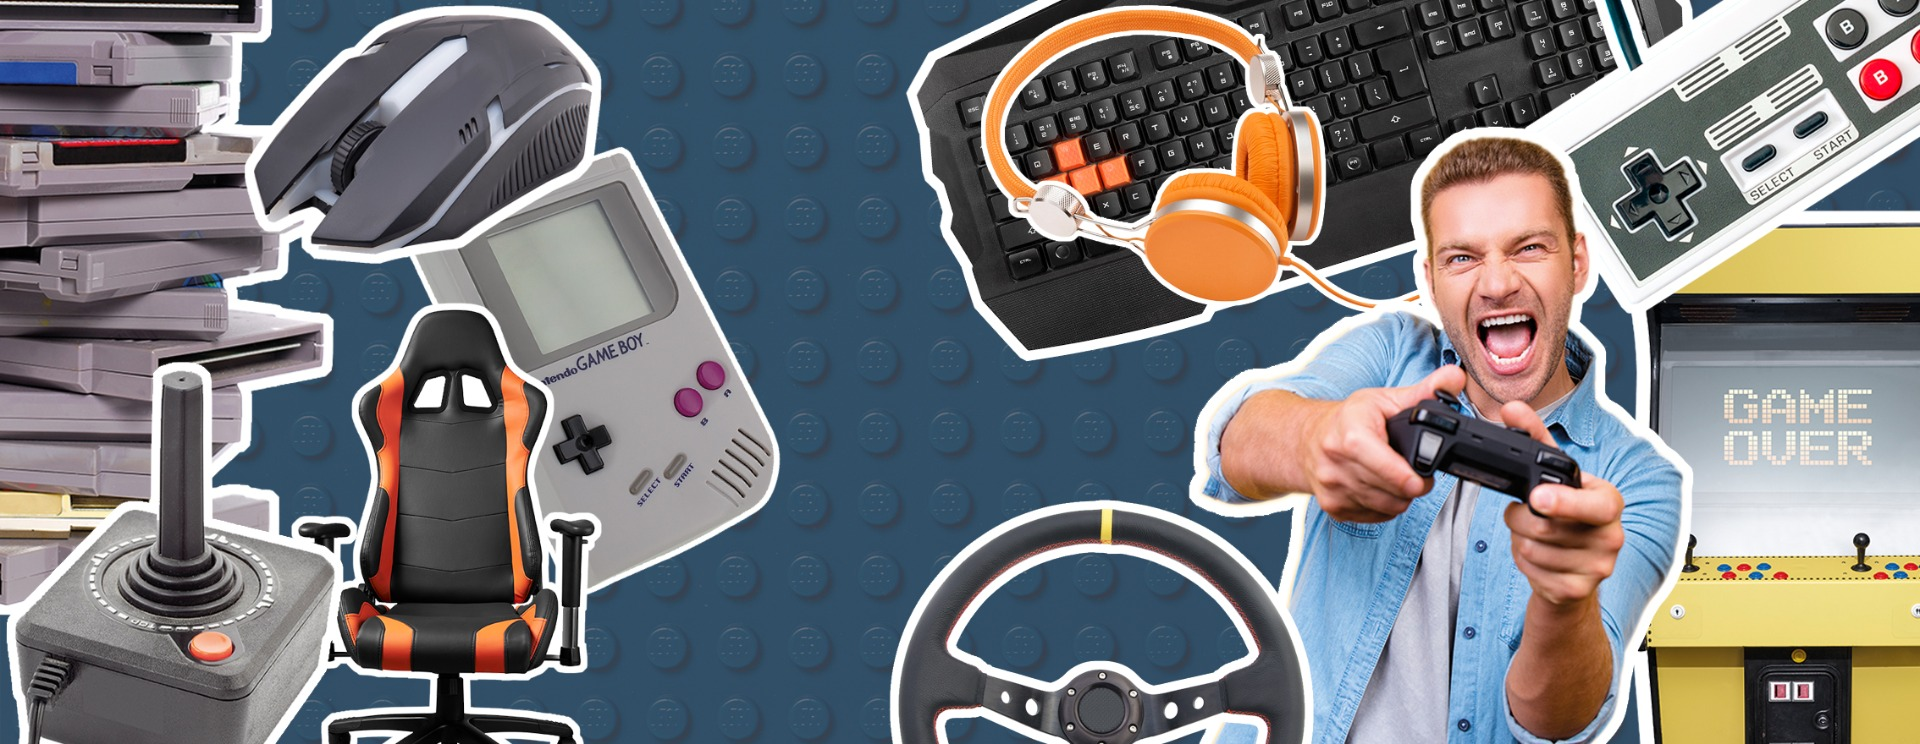 Gaming Gifts | Retro Gaming and Console Gaming Collectable Gifts